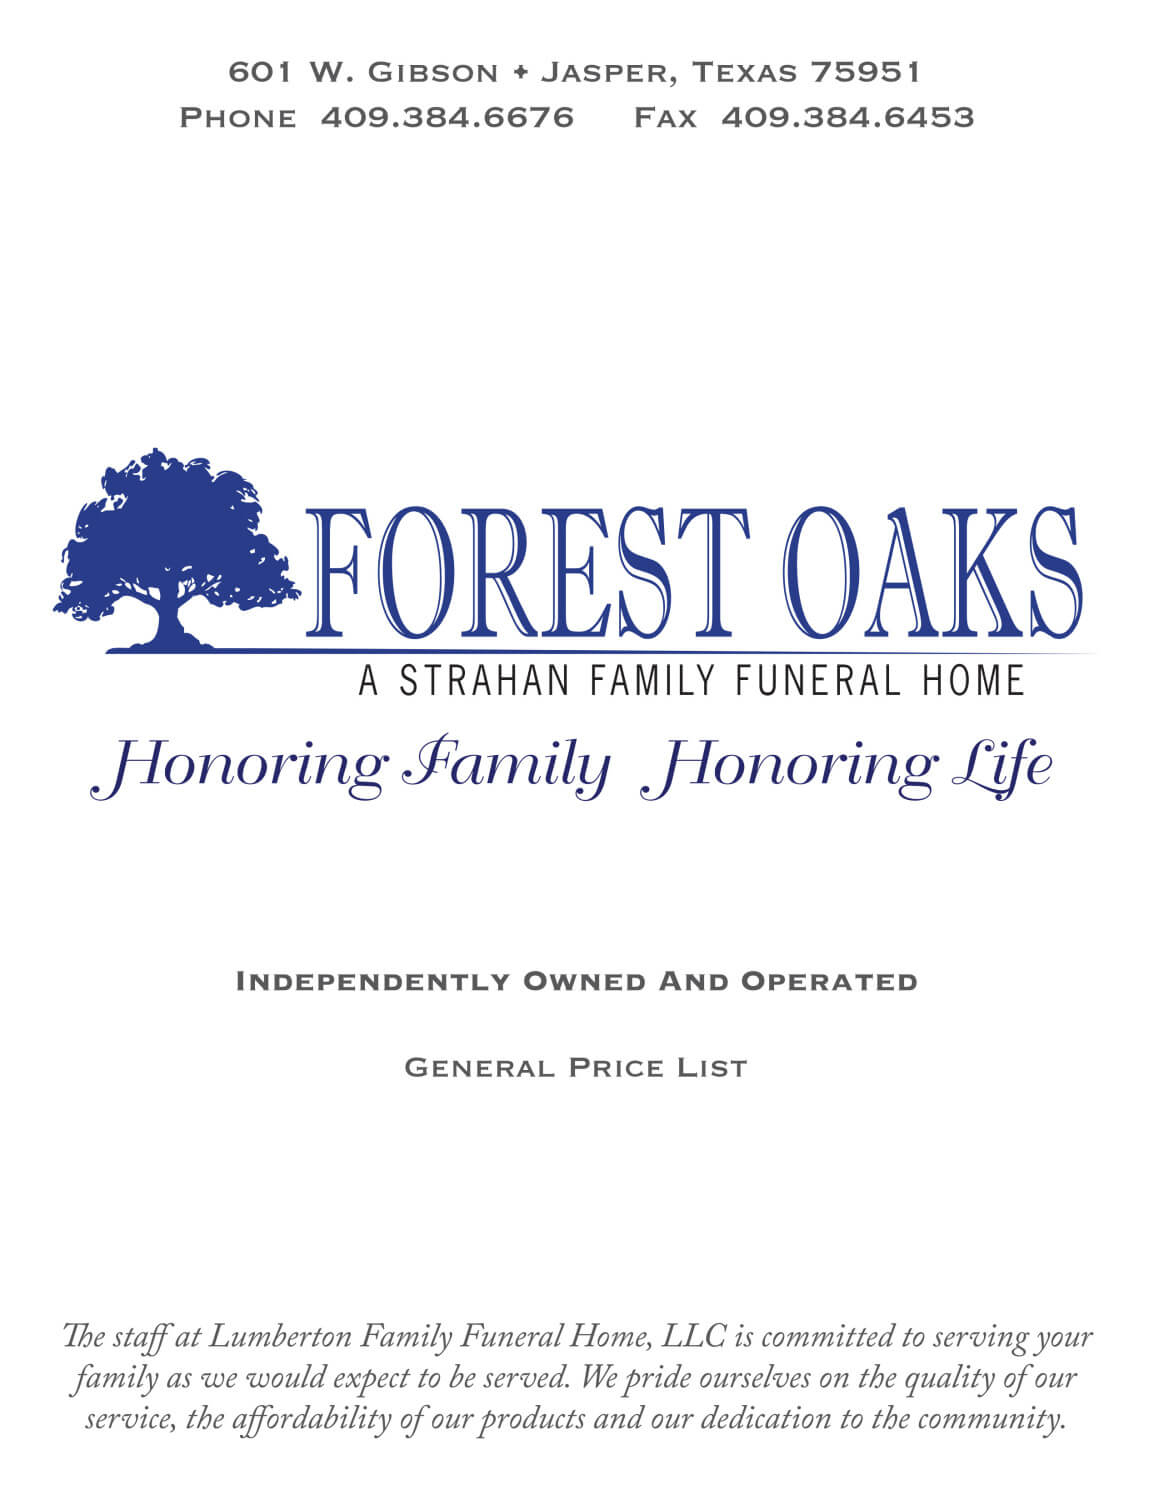 General Price List | Forest Oaks Funeral Home | Jasper TX funeral